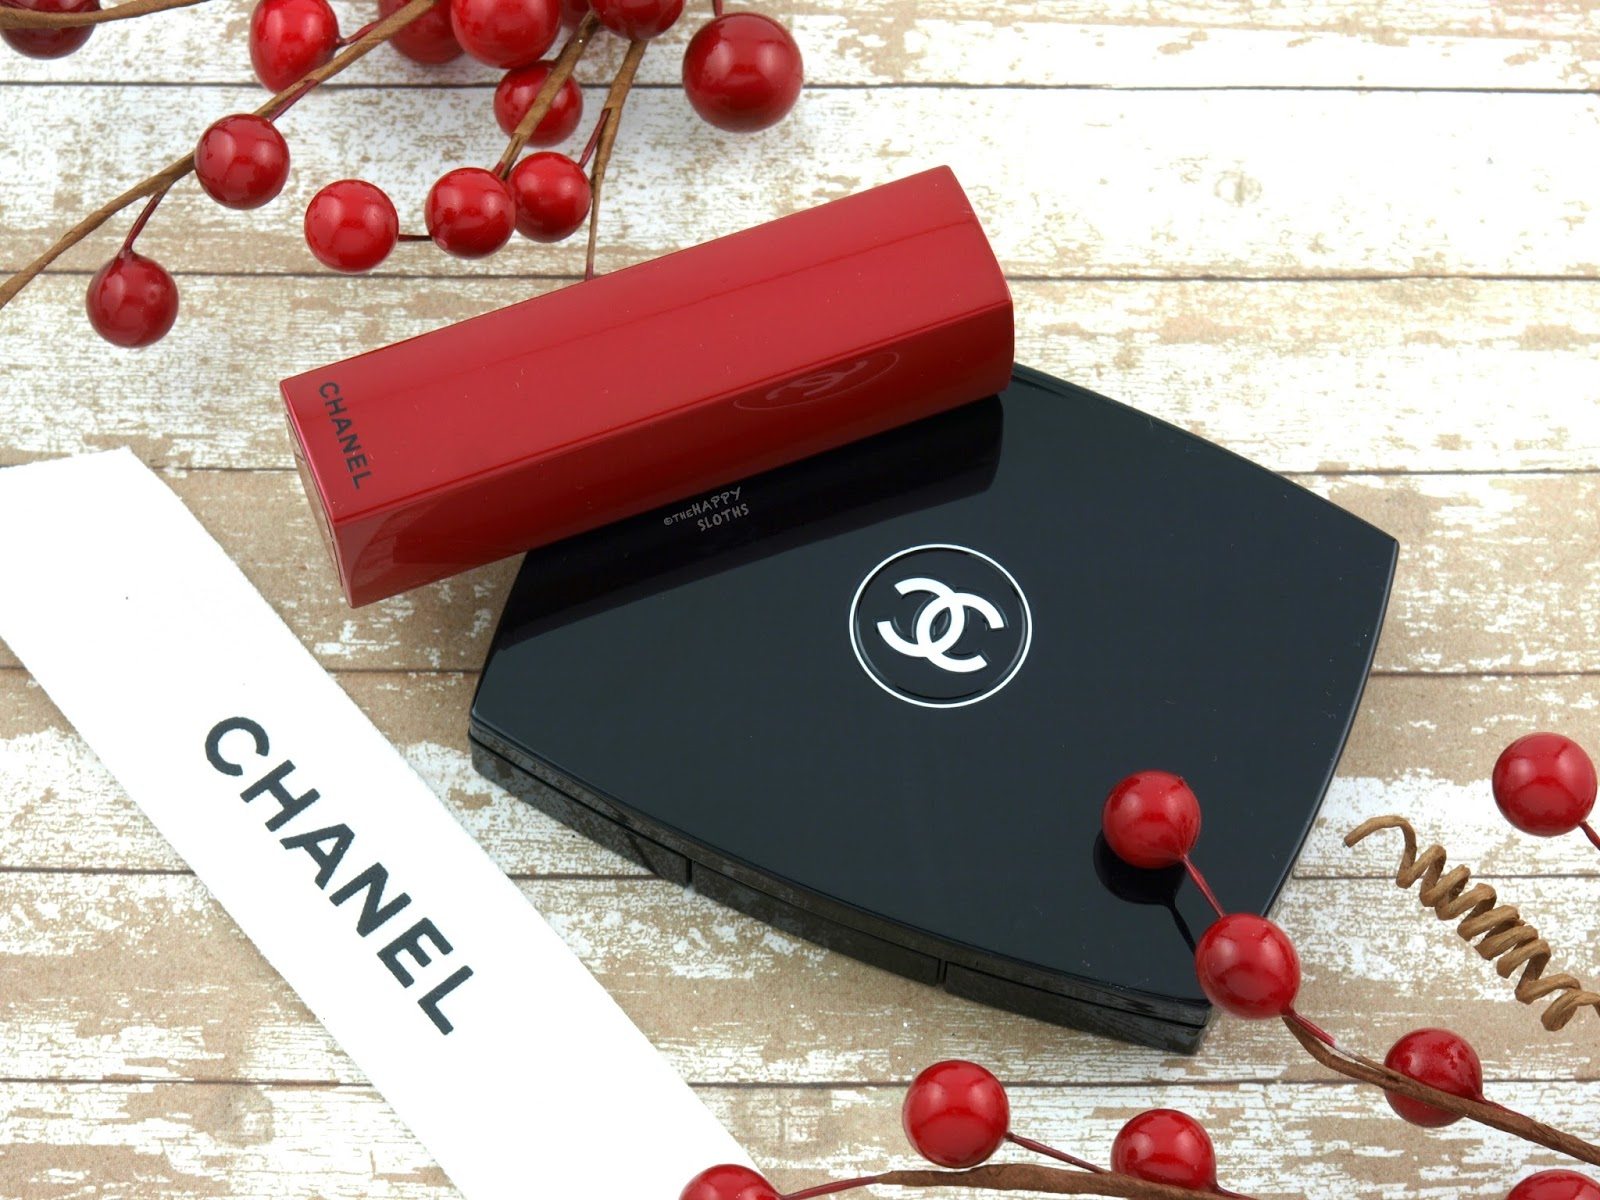 Chanel Holiday 2017 | Collection Libre Numéros Rouges: Review and Swatches